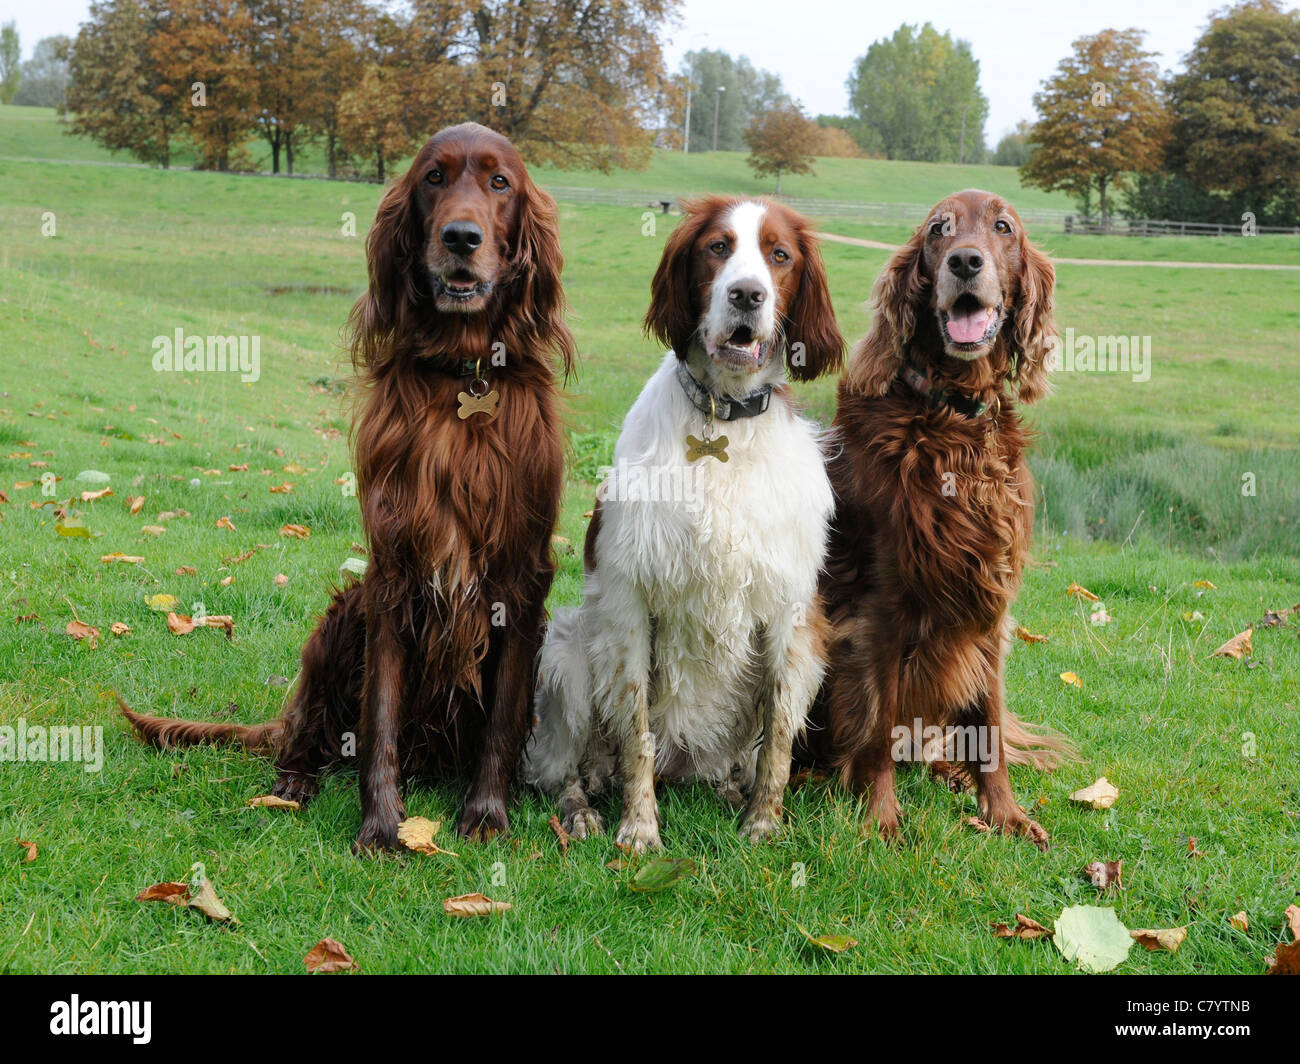 Three English setters sitting on the grass - Stock Image